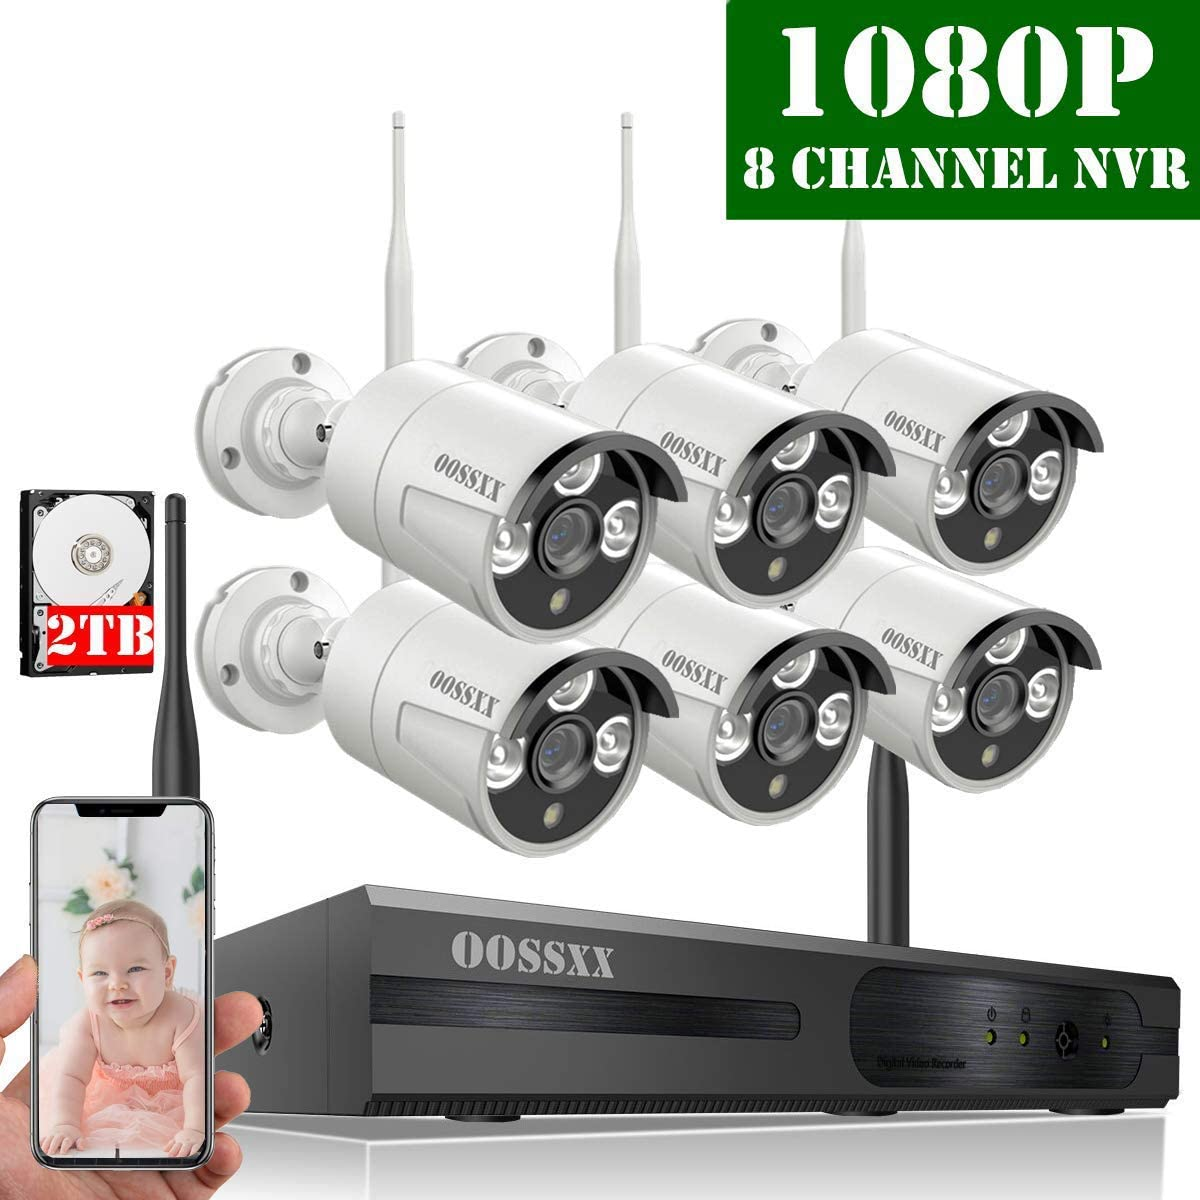 2020 Update HD 1080P 8-Channel OOSSXX Wireless Security Camera System,6Pcs 1080P 2.0 Megapixel Wireless Indoor Outdoor IR Bullet IP Cameras with One-Way Audio,P2P,App, HDMI Cord 2TB HDD